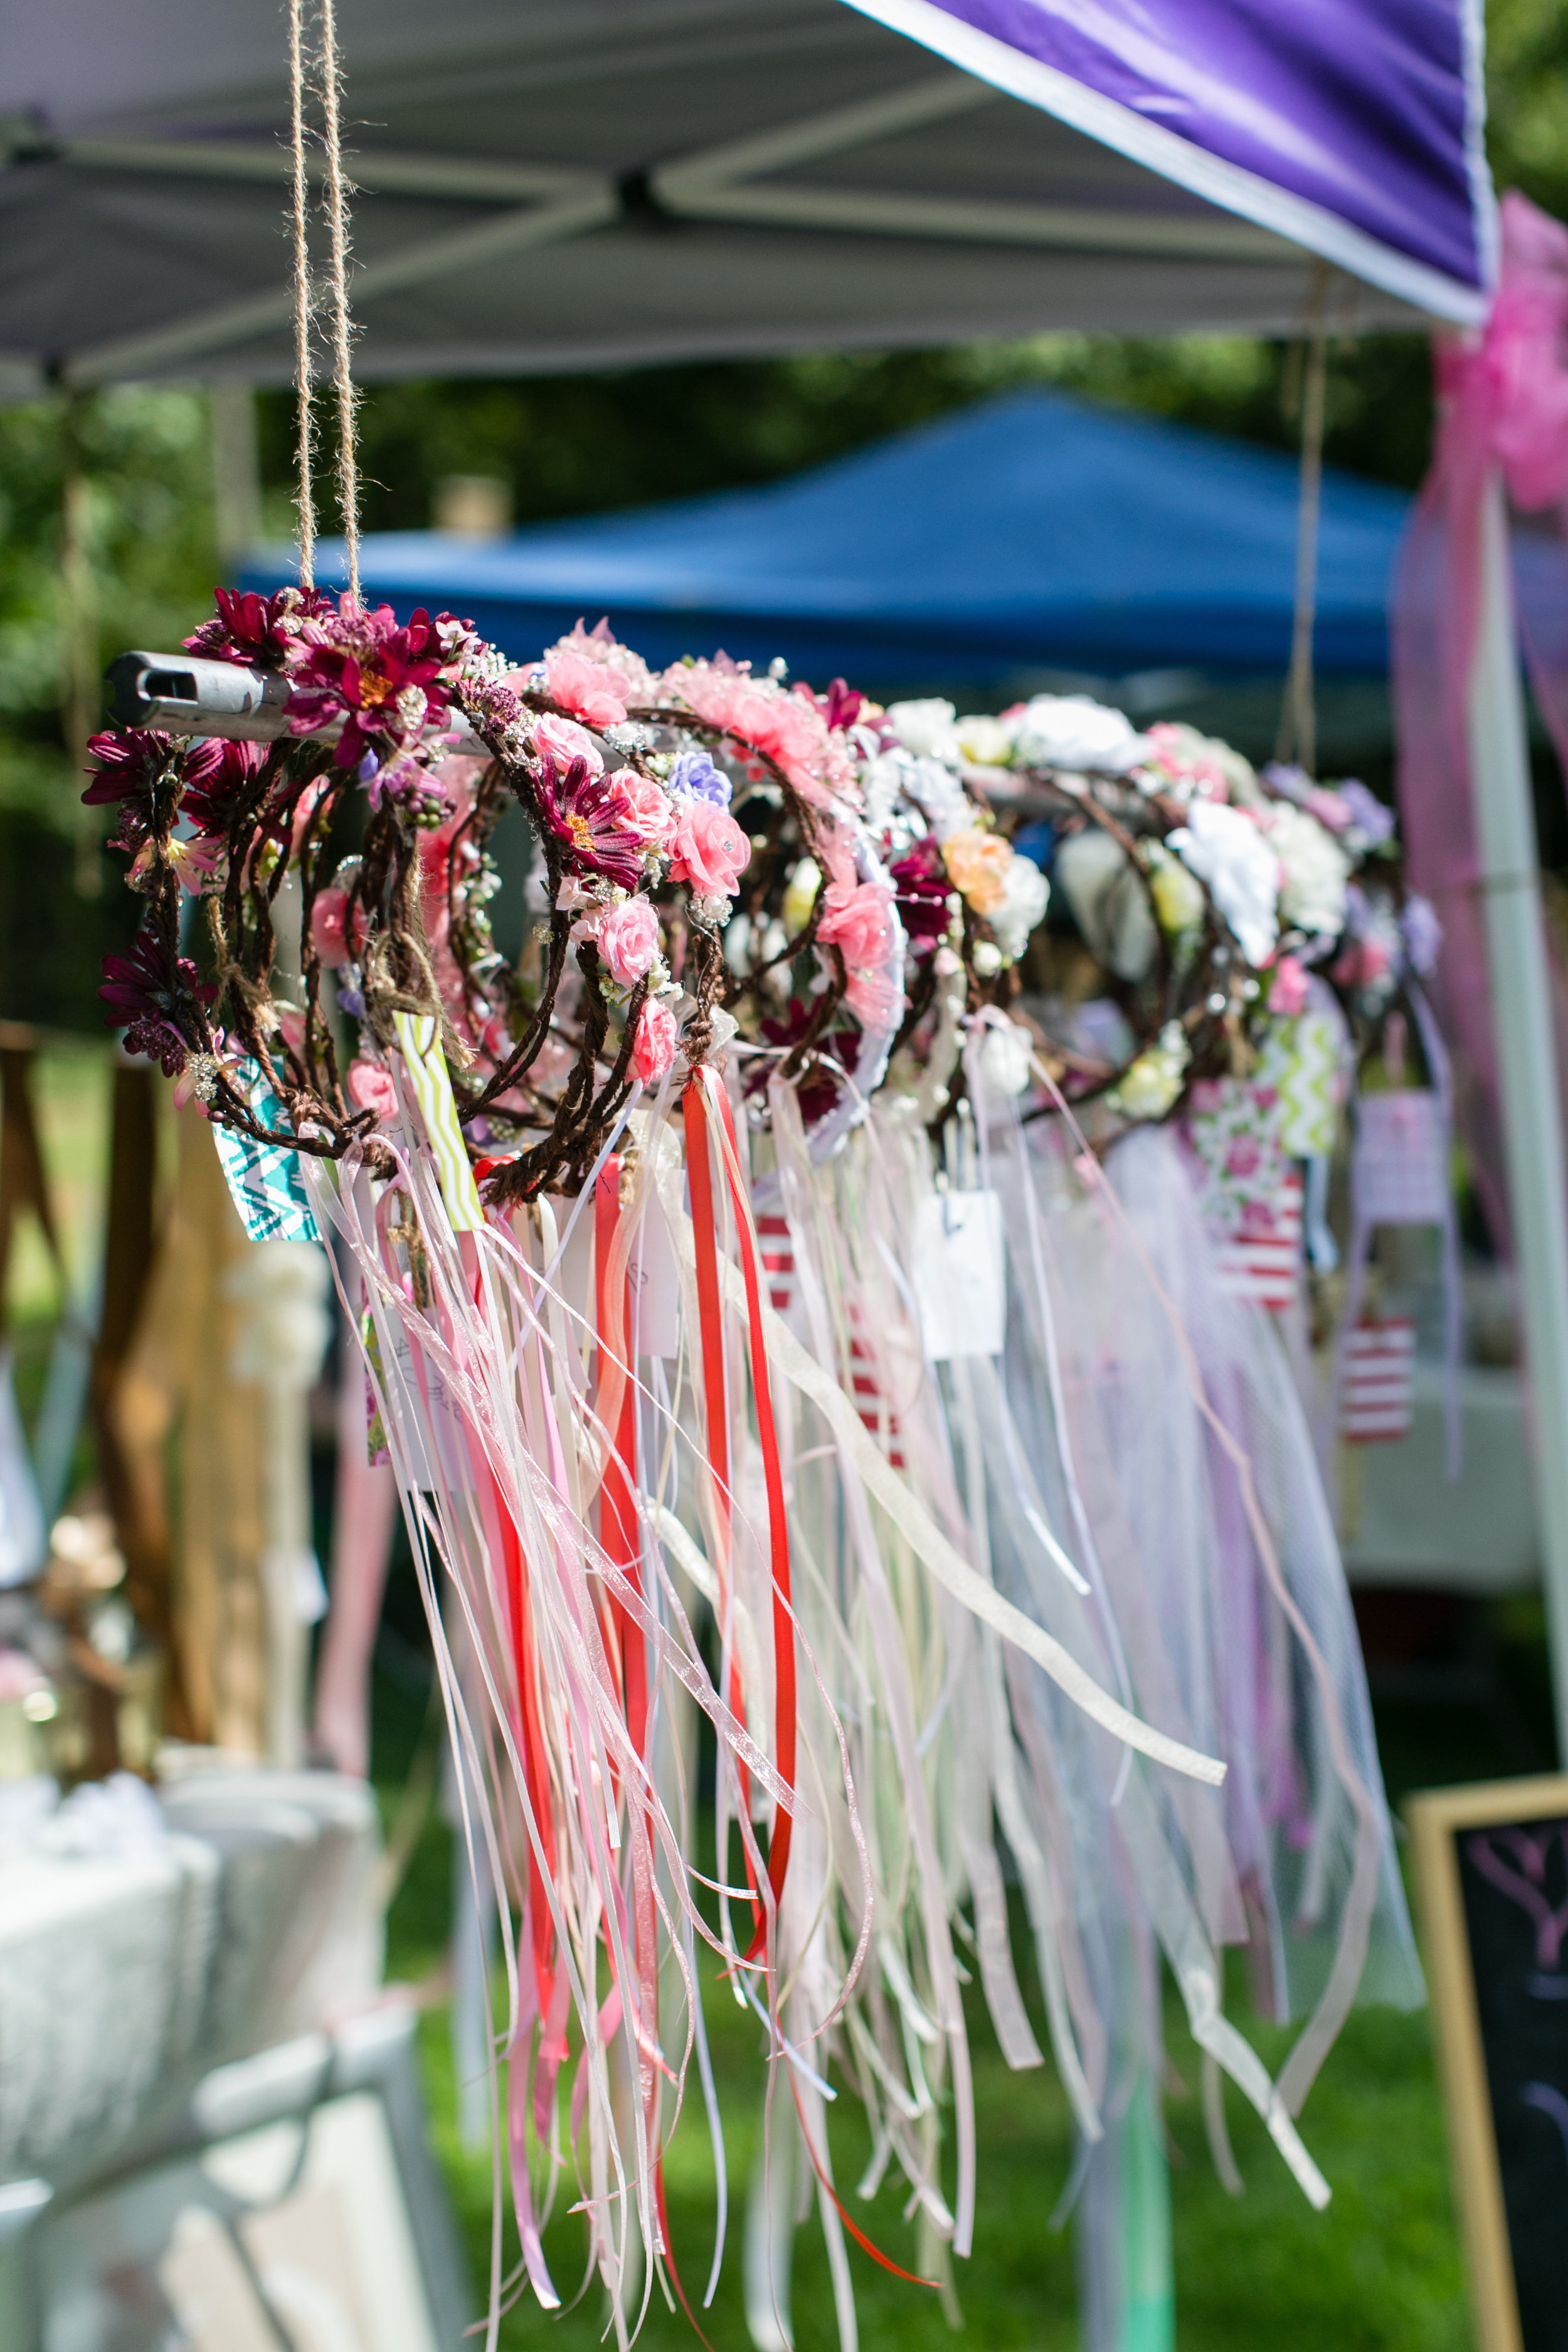 Sassy Wedding Boutique   Sharpsburg, GA   www,etsy.com/shop/sassyweddingboutique   Handcrafted headbands, tutus, fairy wands, wedding veils, wedding belts, ribbons, flower girl dresses, cowboy vests, purses, chokers, earrings, silk boutonnieres and bouquets